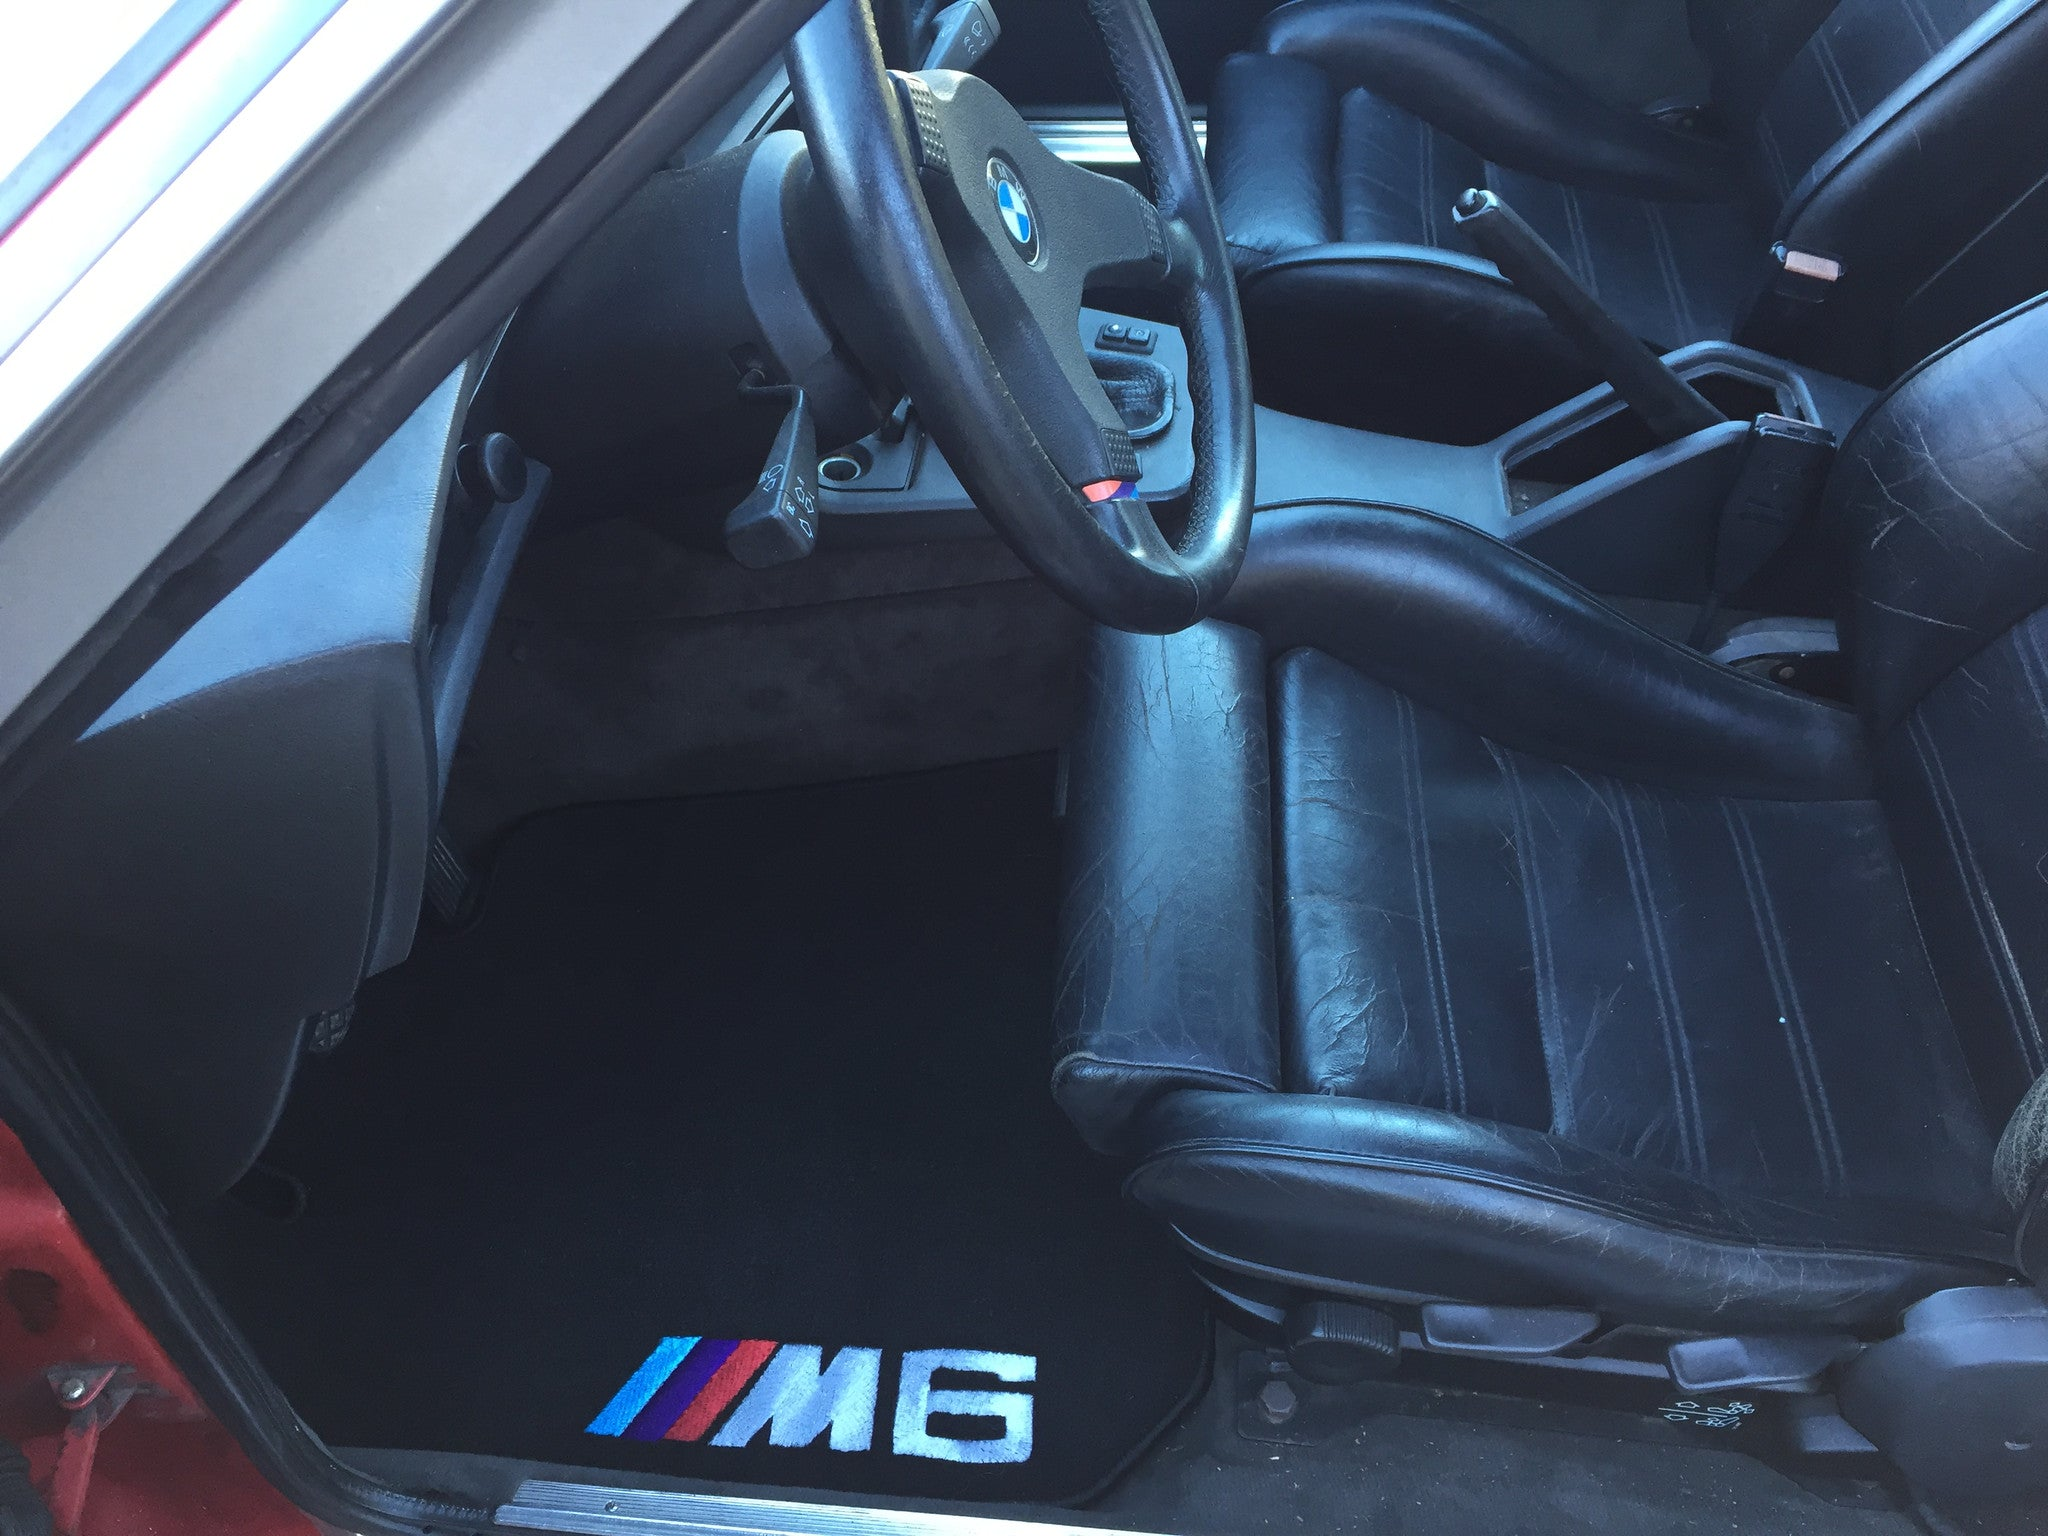 Matworks Makes Custom Car Mats